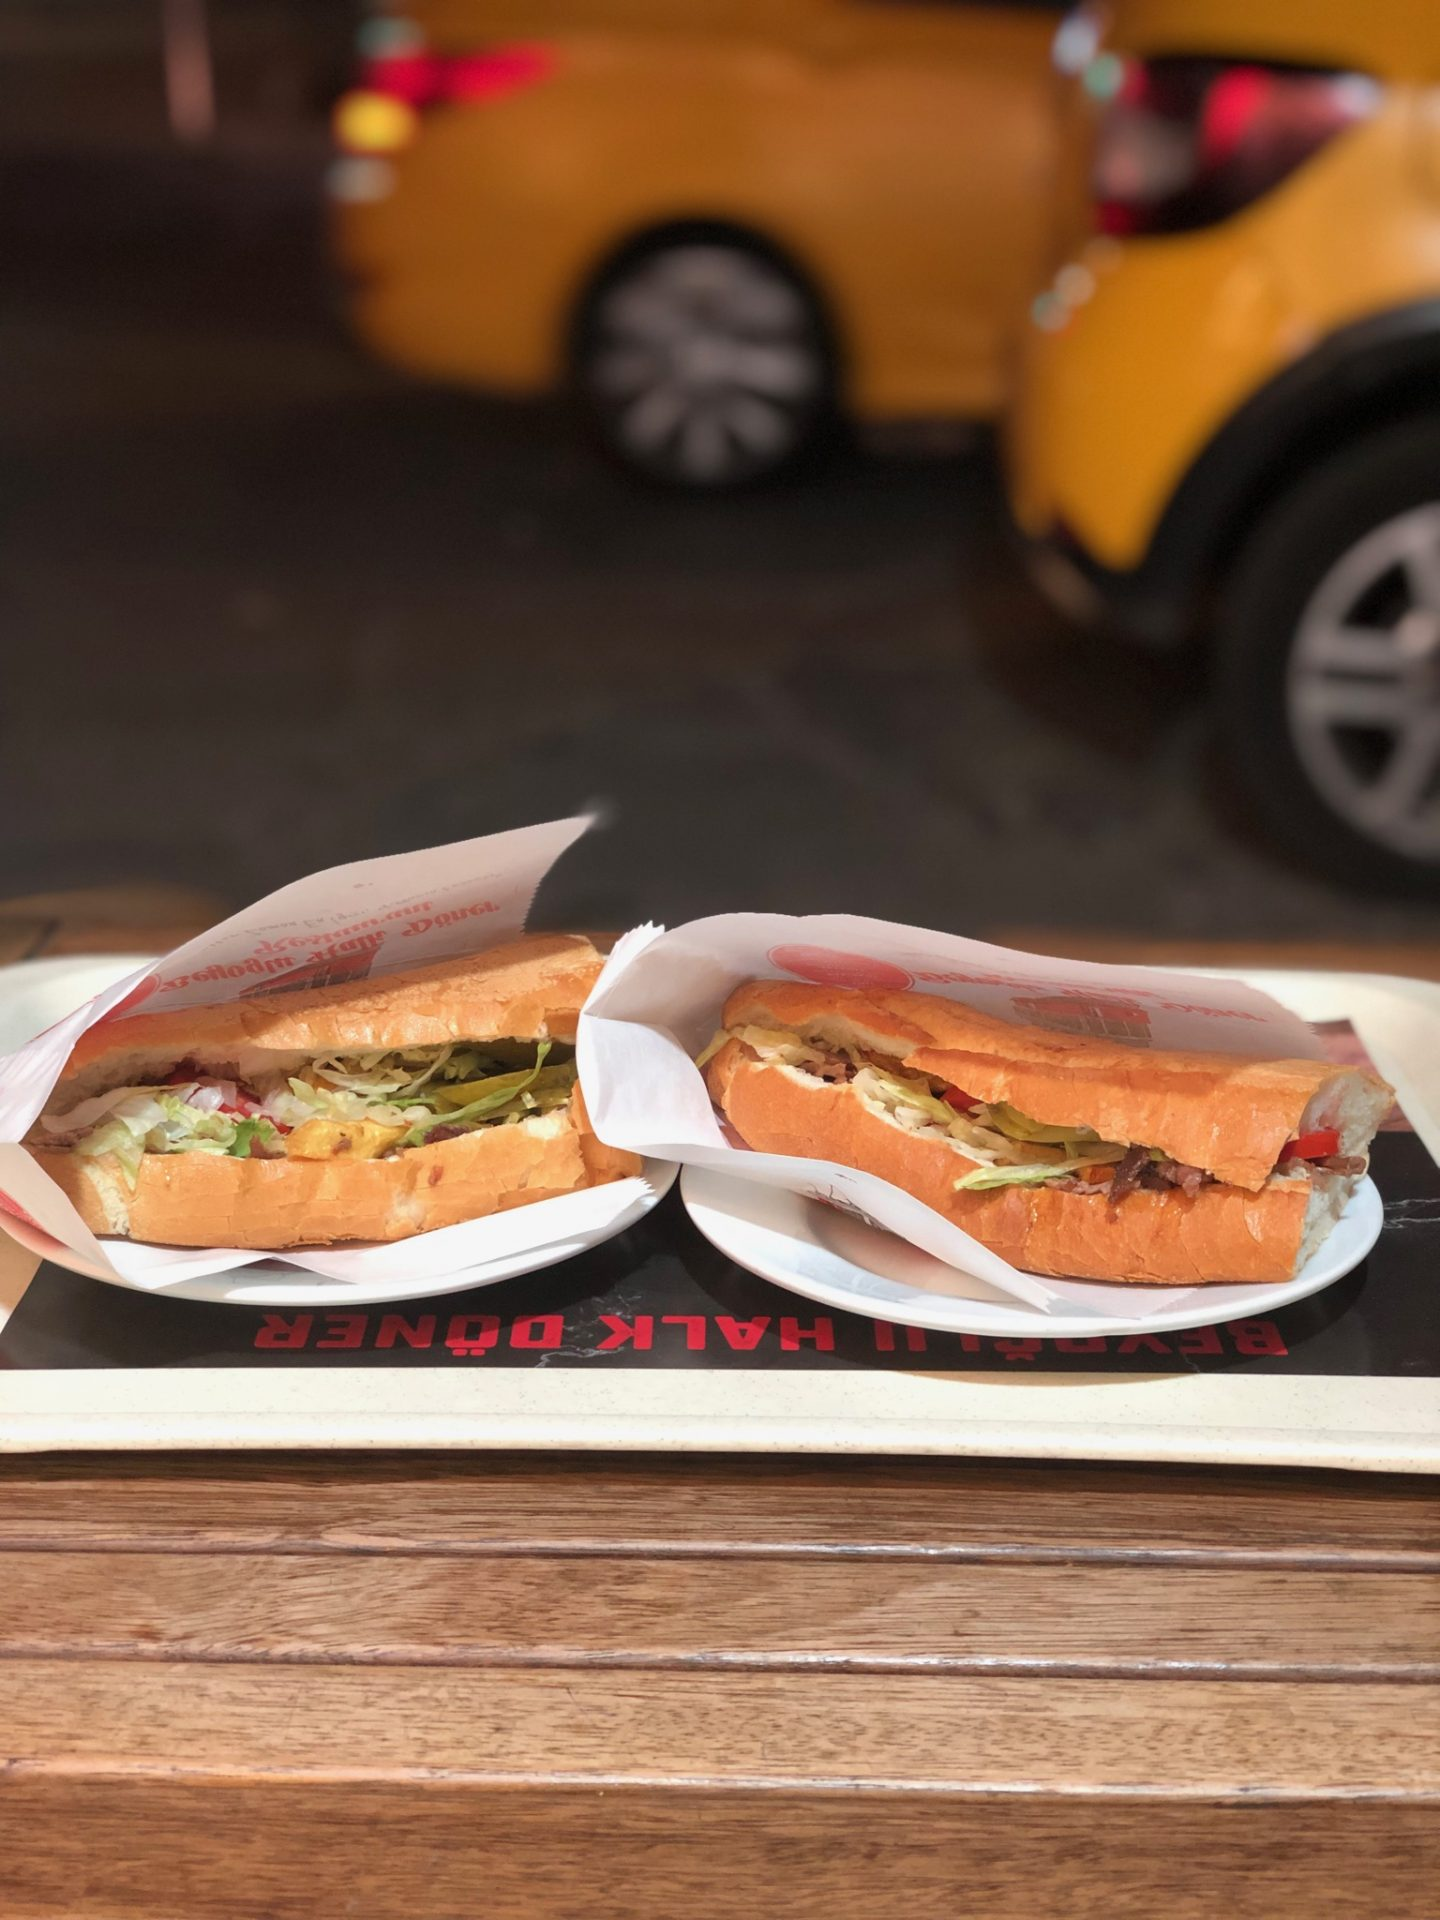 Two kebabs on a tray on a wooden table shot at night, with two yellow taxis blurred out in the background